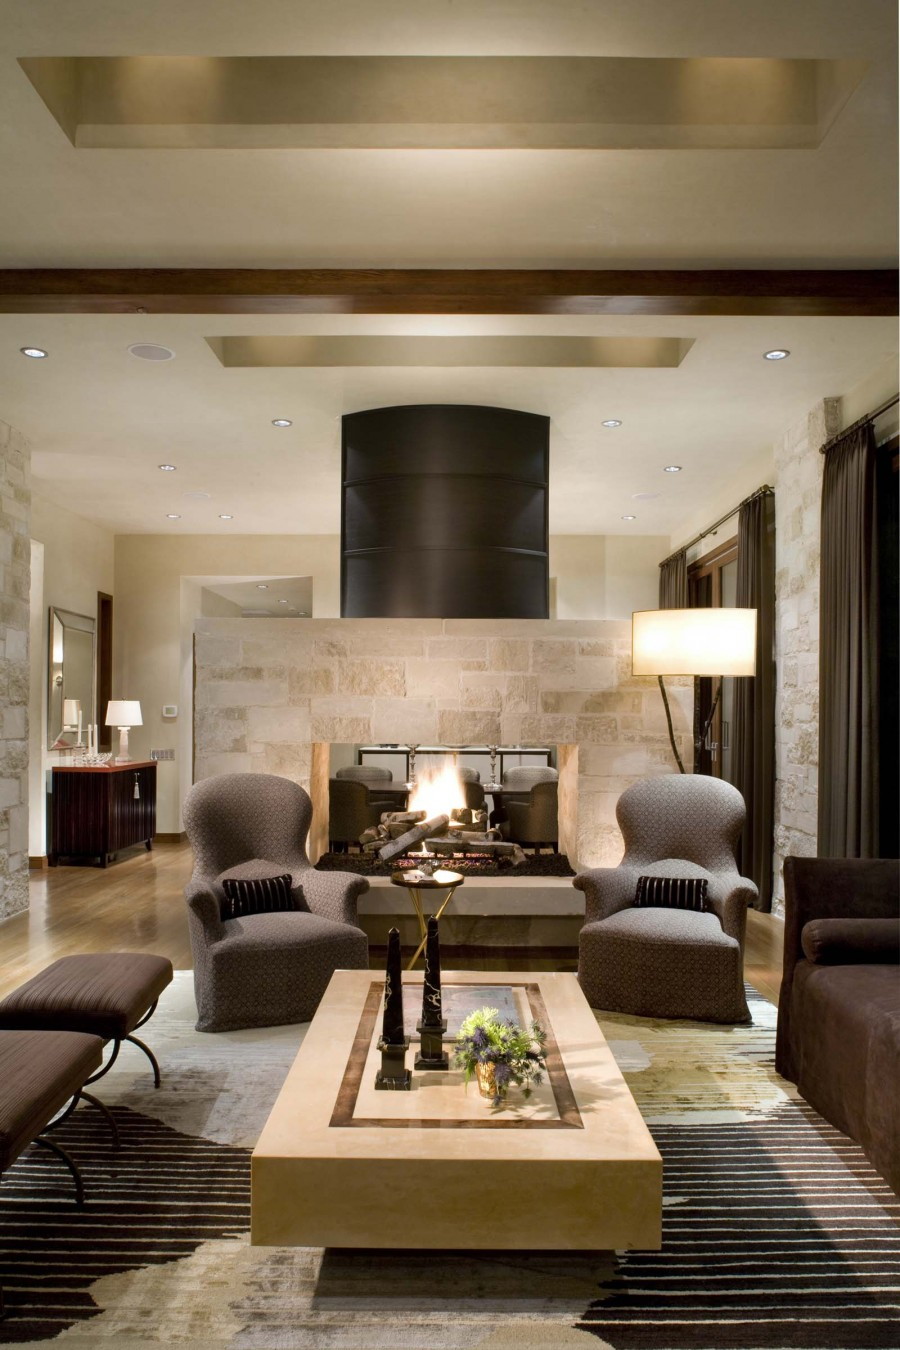 16 fabulous earth tones living room designs decoholic for Design ideas living room